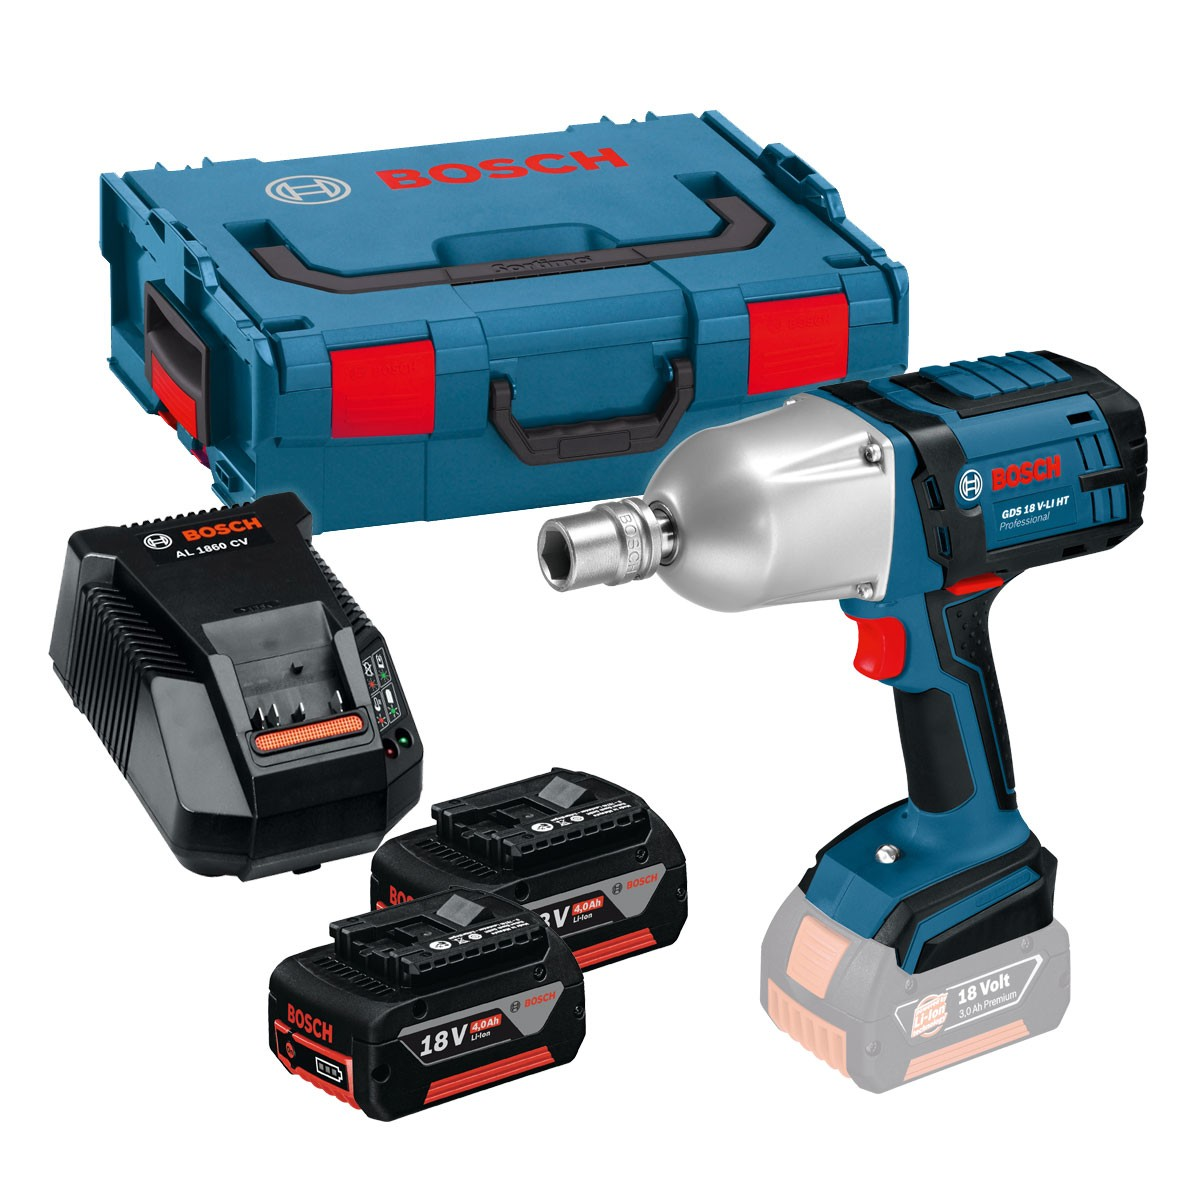 Bosch GDS 18 V-LI HT High Torque Impact Wrench inc 2x 4Ah Batts